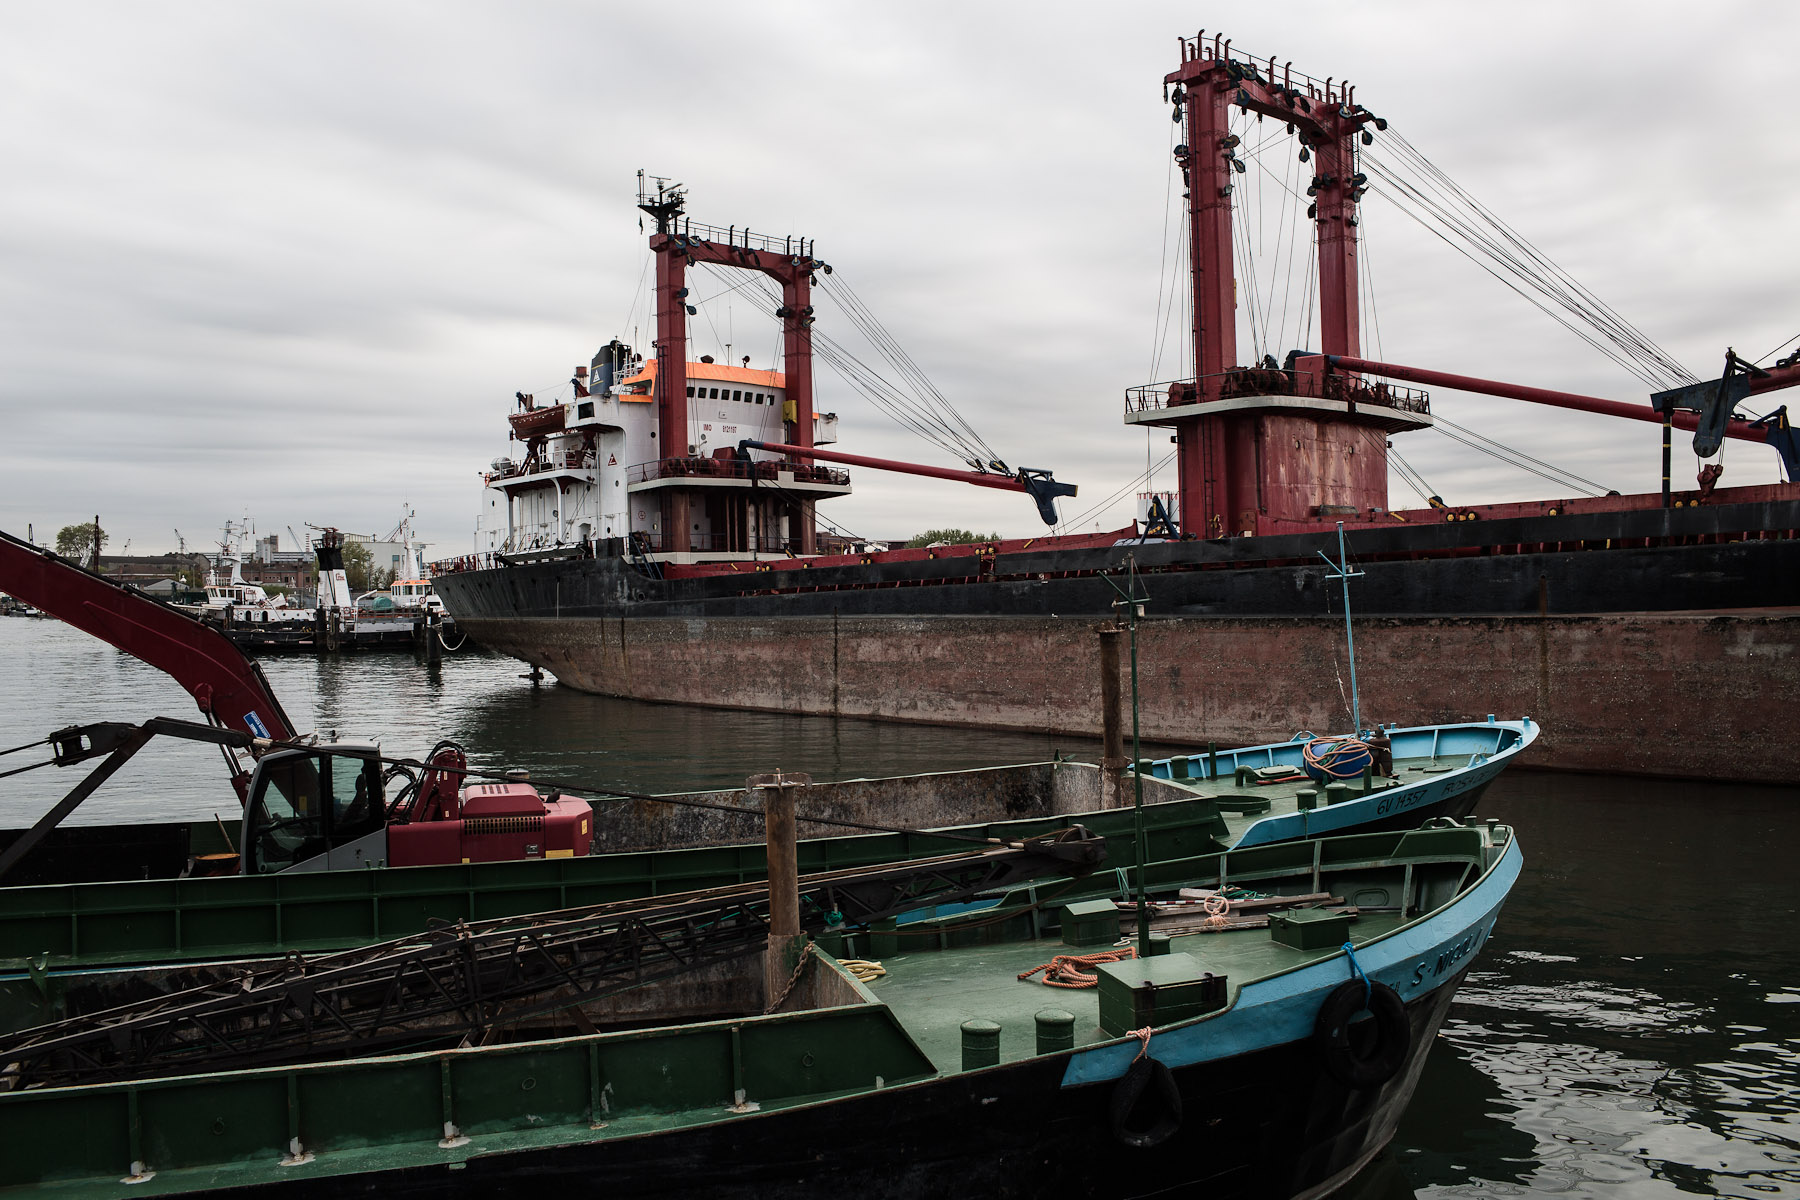 The Marghera port is a sight very far from the beauty of Venice. Rusting steel of large cargo ships and heavy machinery. It lies just a couple of kilometers from the city of Venice.